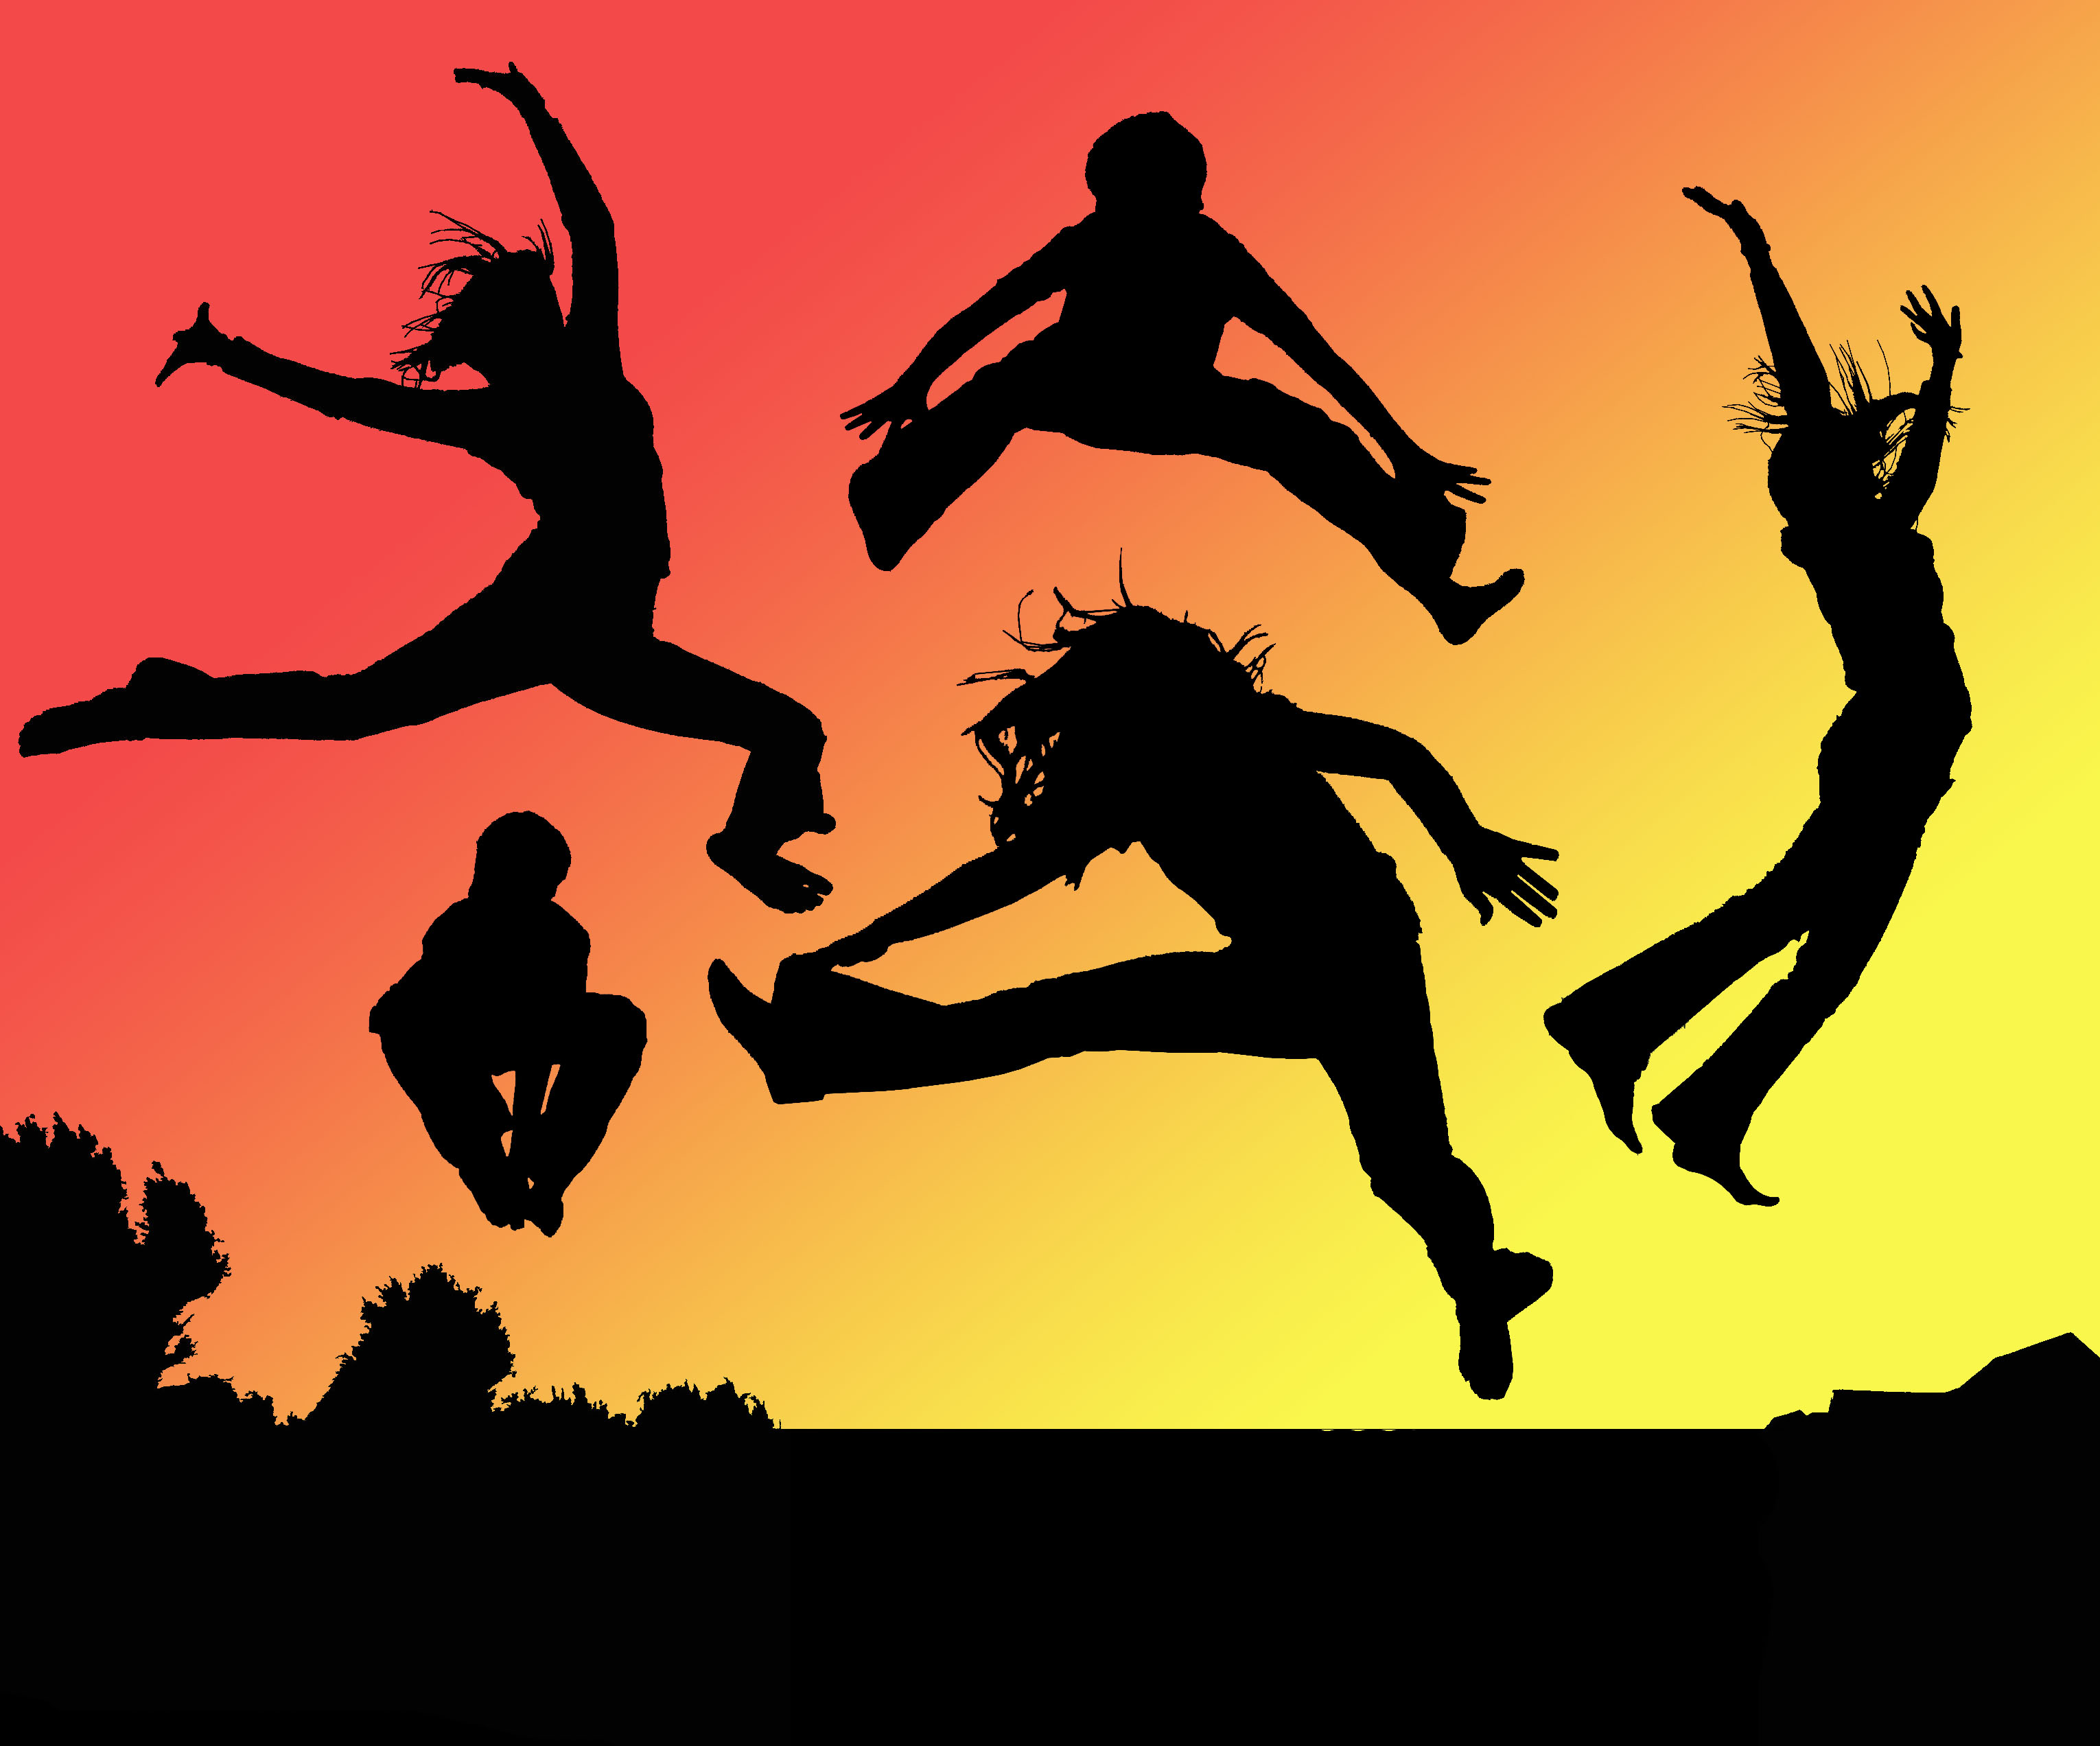 Jump into what makes you feel good.